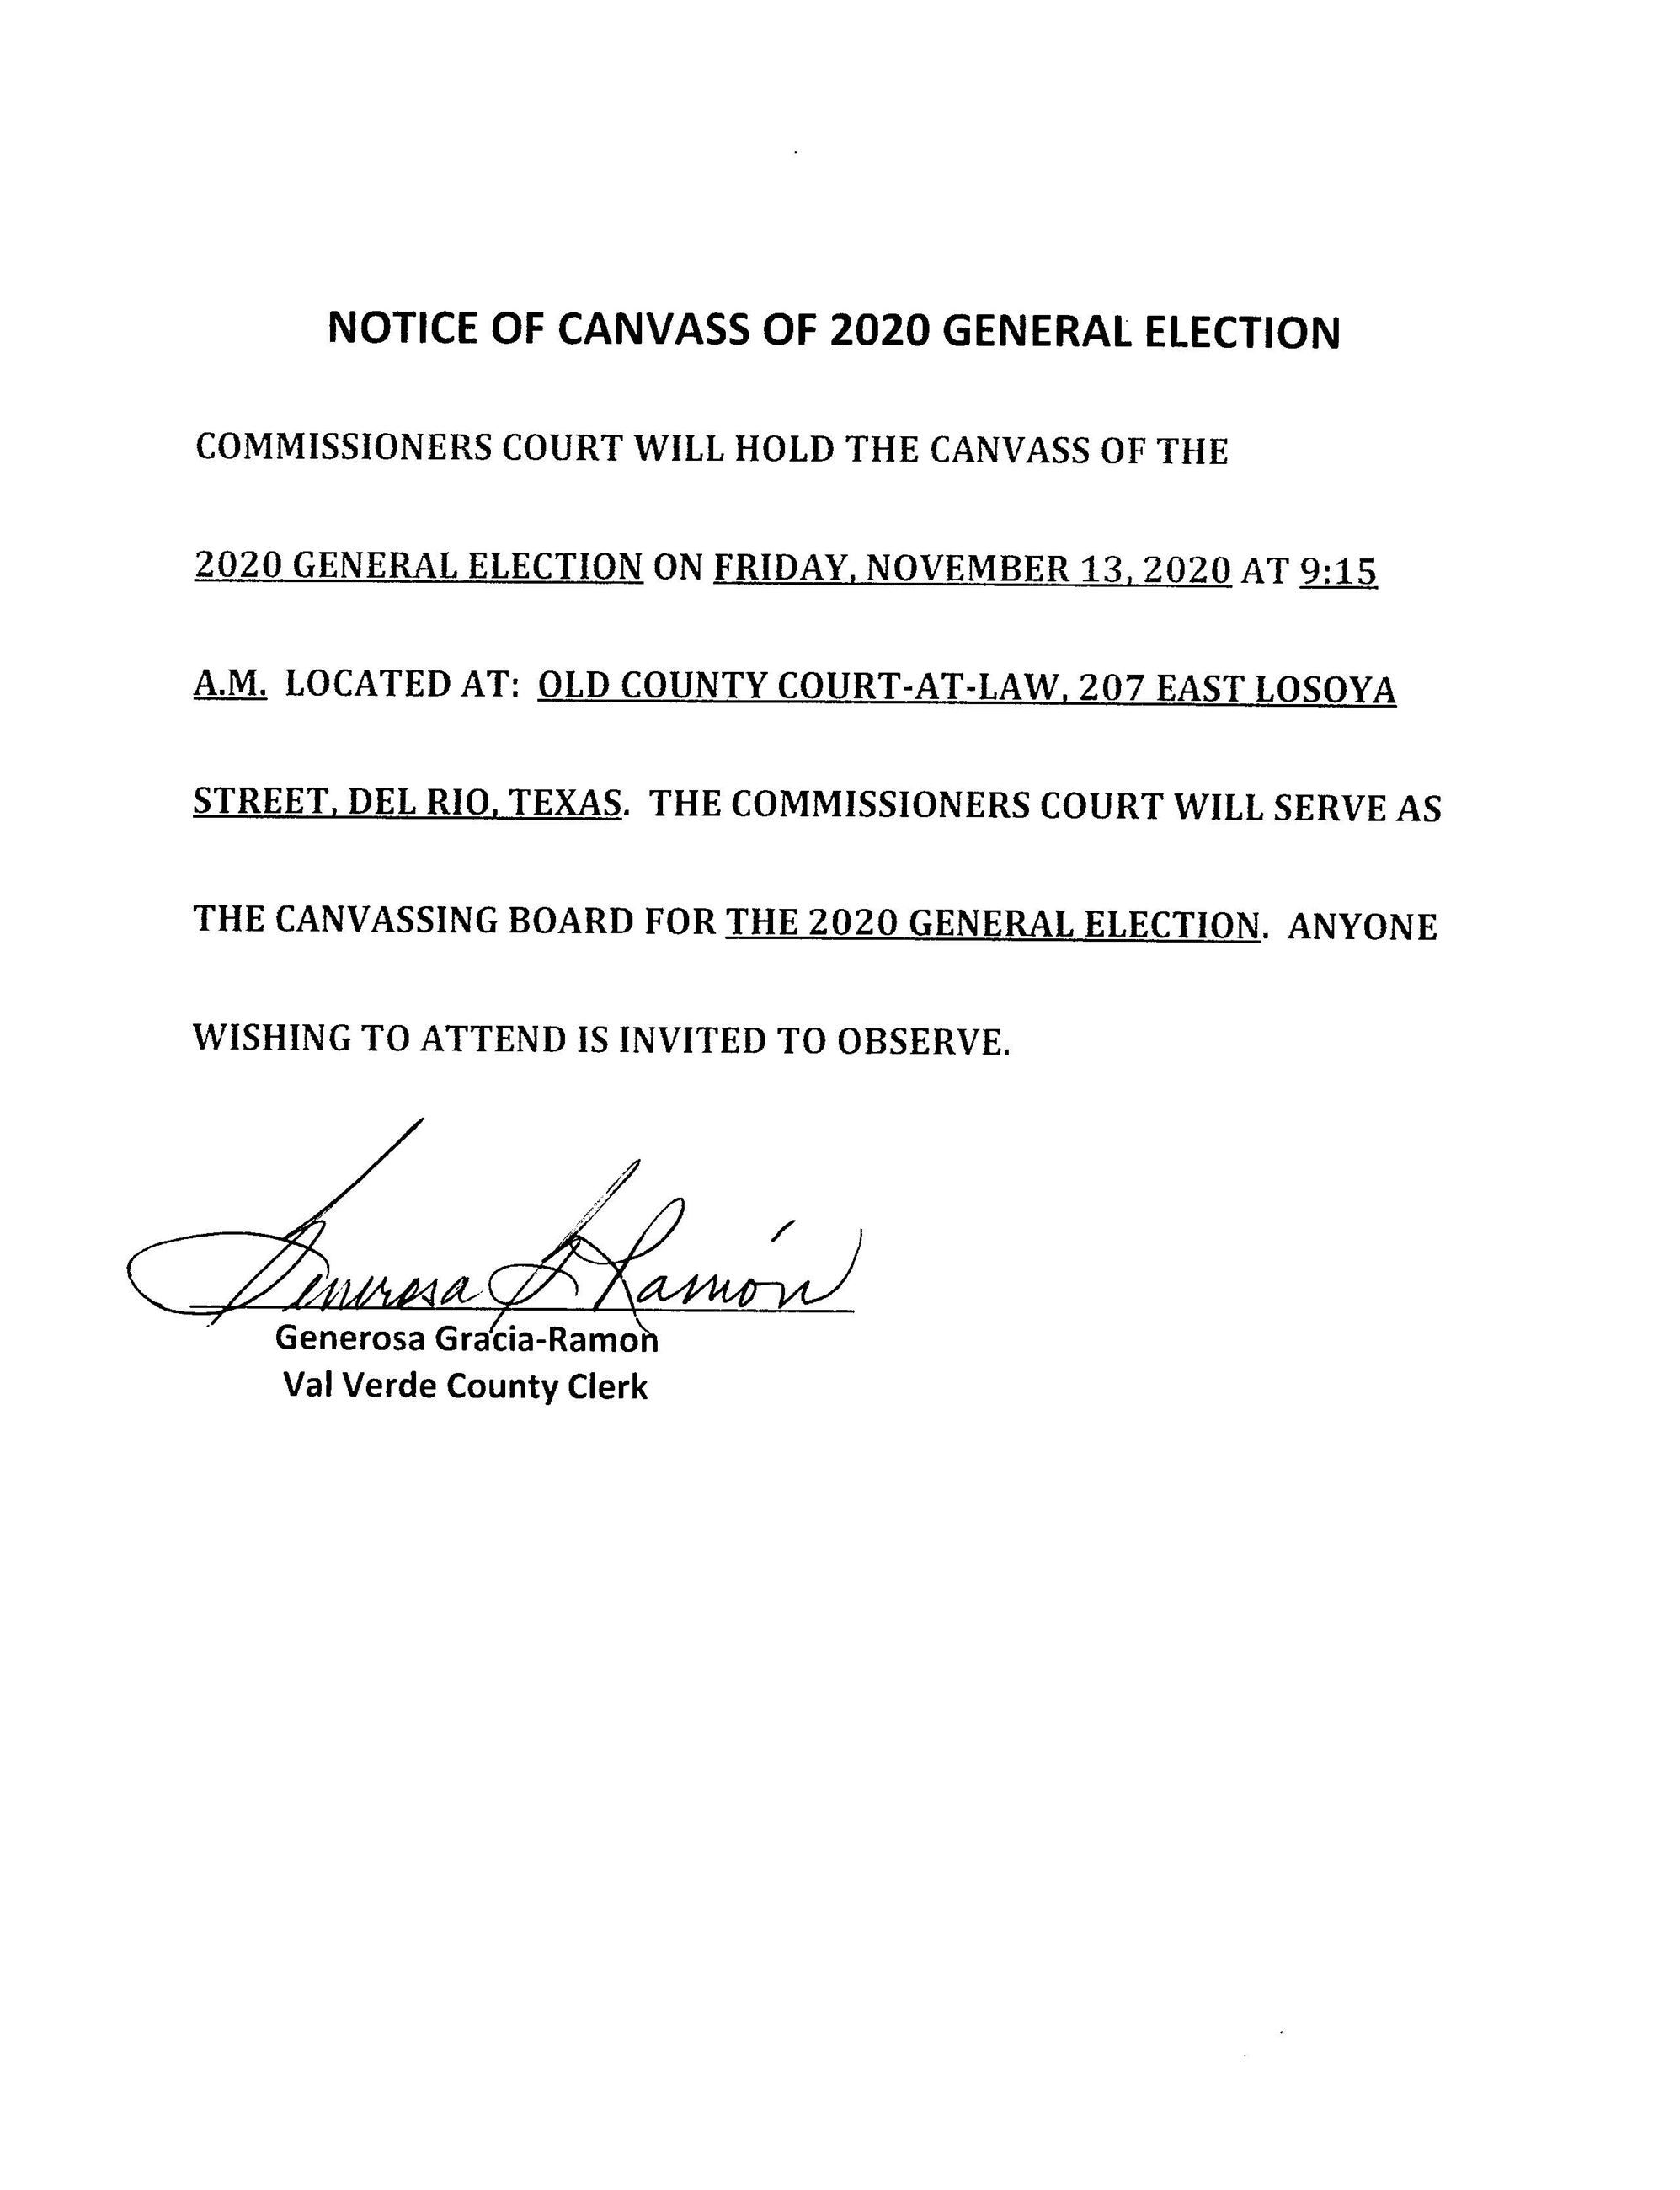 NOTICE OF CANVASS OF 2020 GENERAL ELECTION